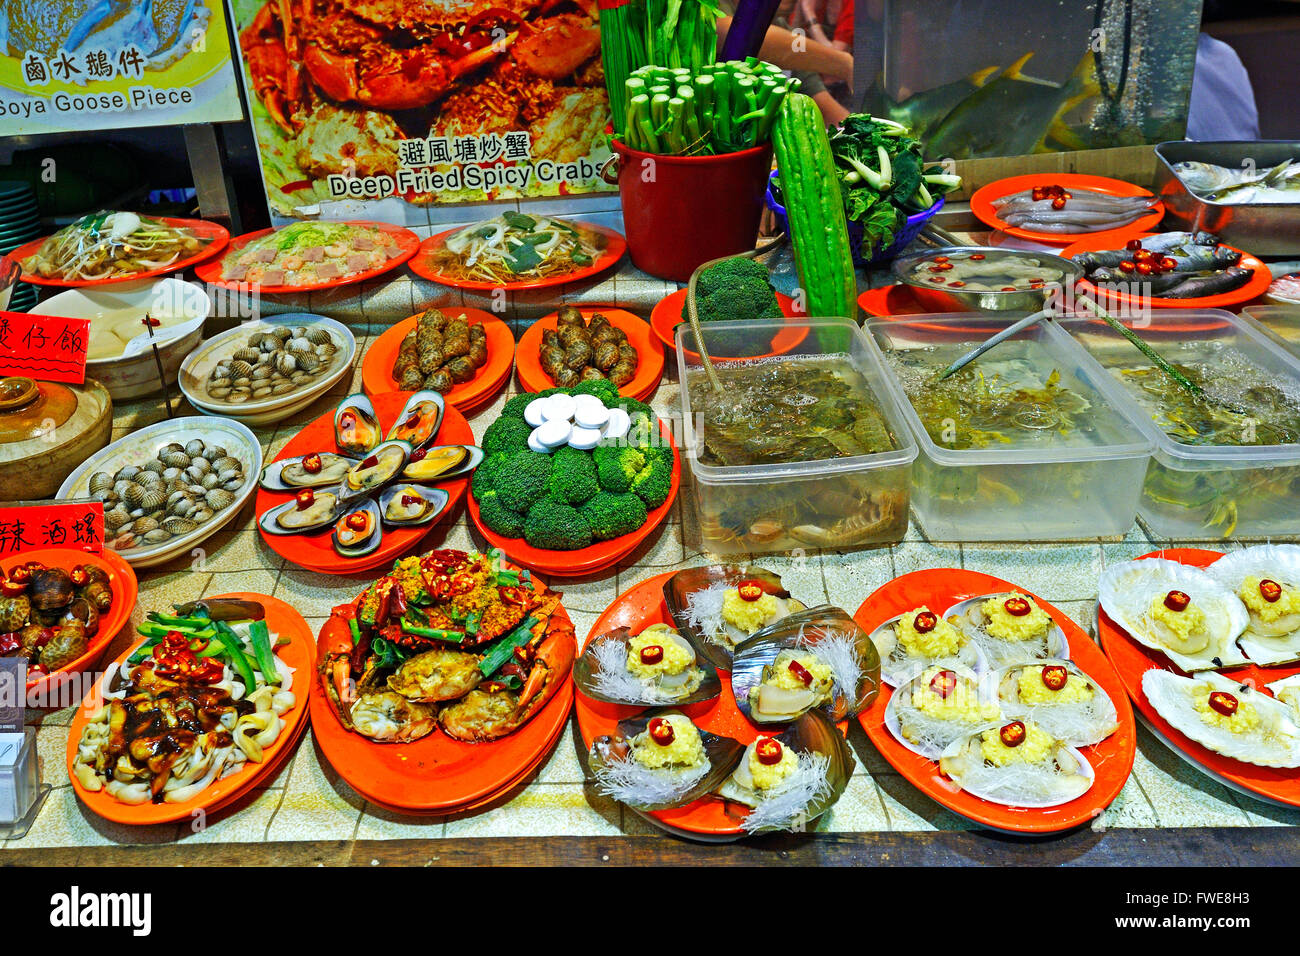 Plates with food, seefood restaurant, Night market, Temple Street, Kowloon, Hongkong, China - Stock Image